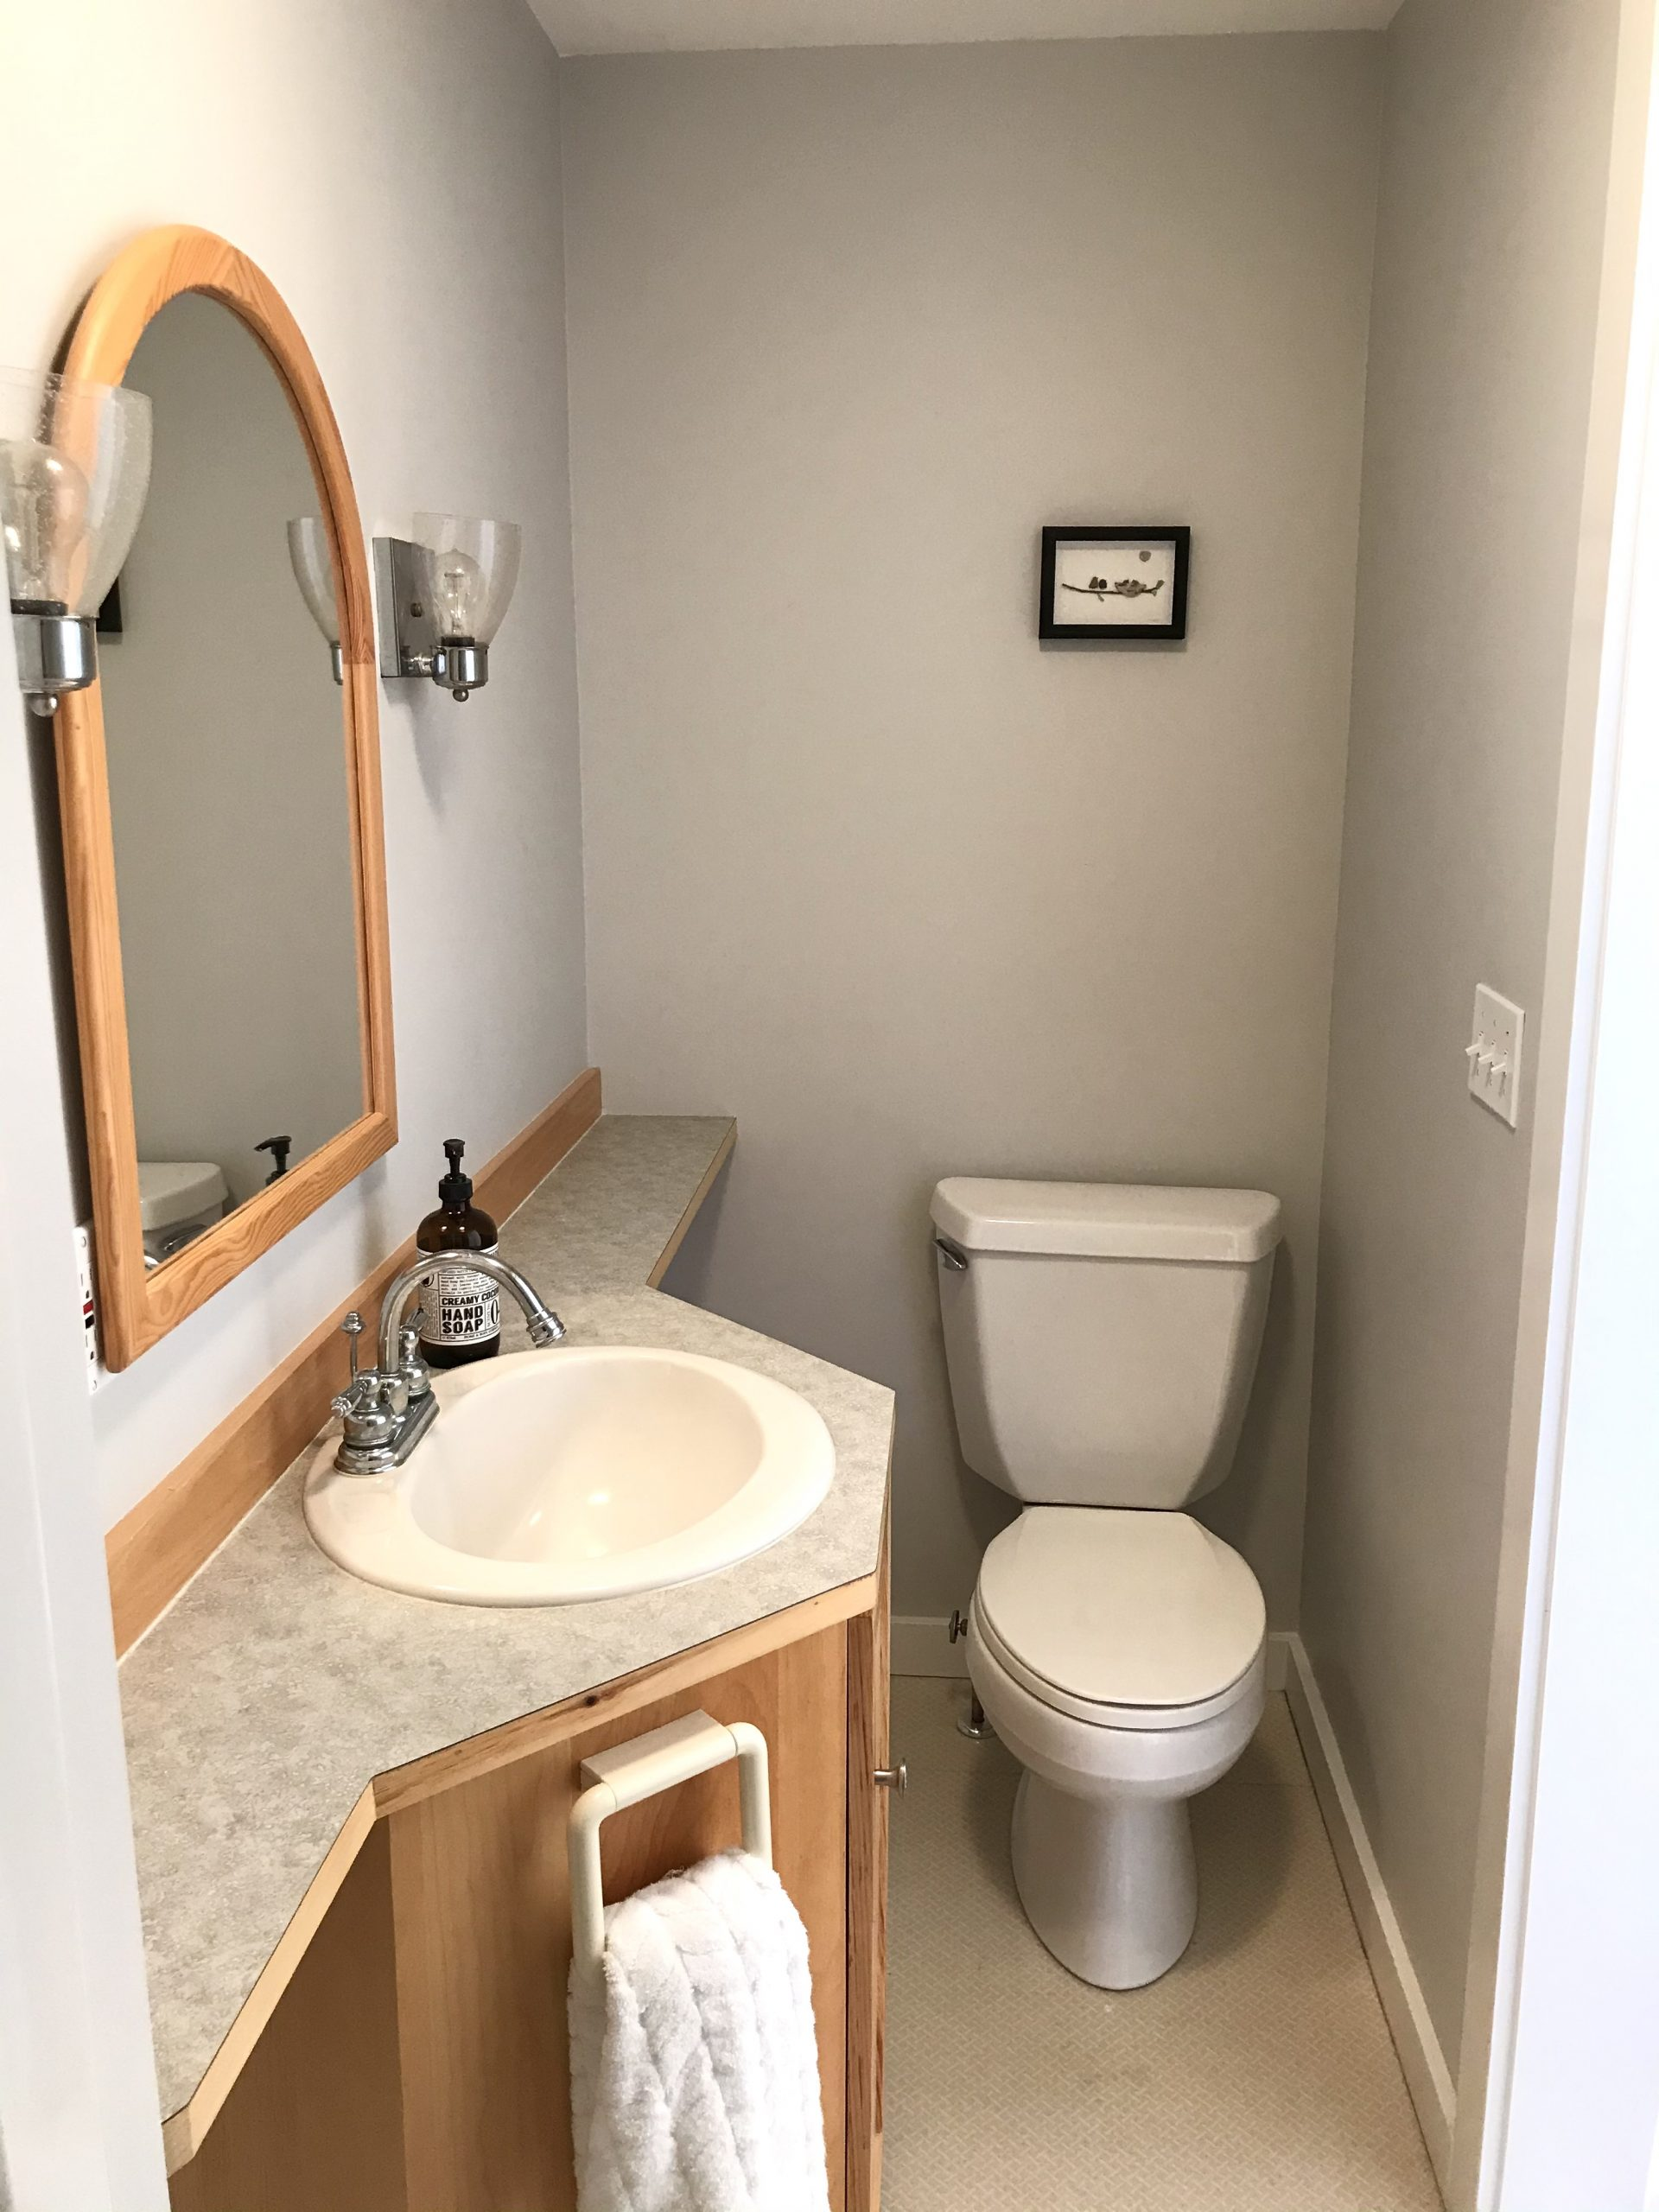 The Small and Awkward Bathroom with the Banjo Countertop – Before and After Photos